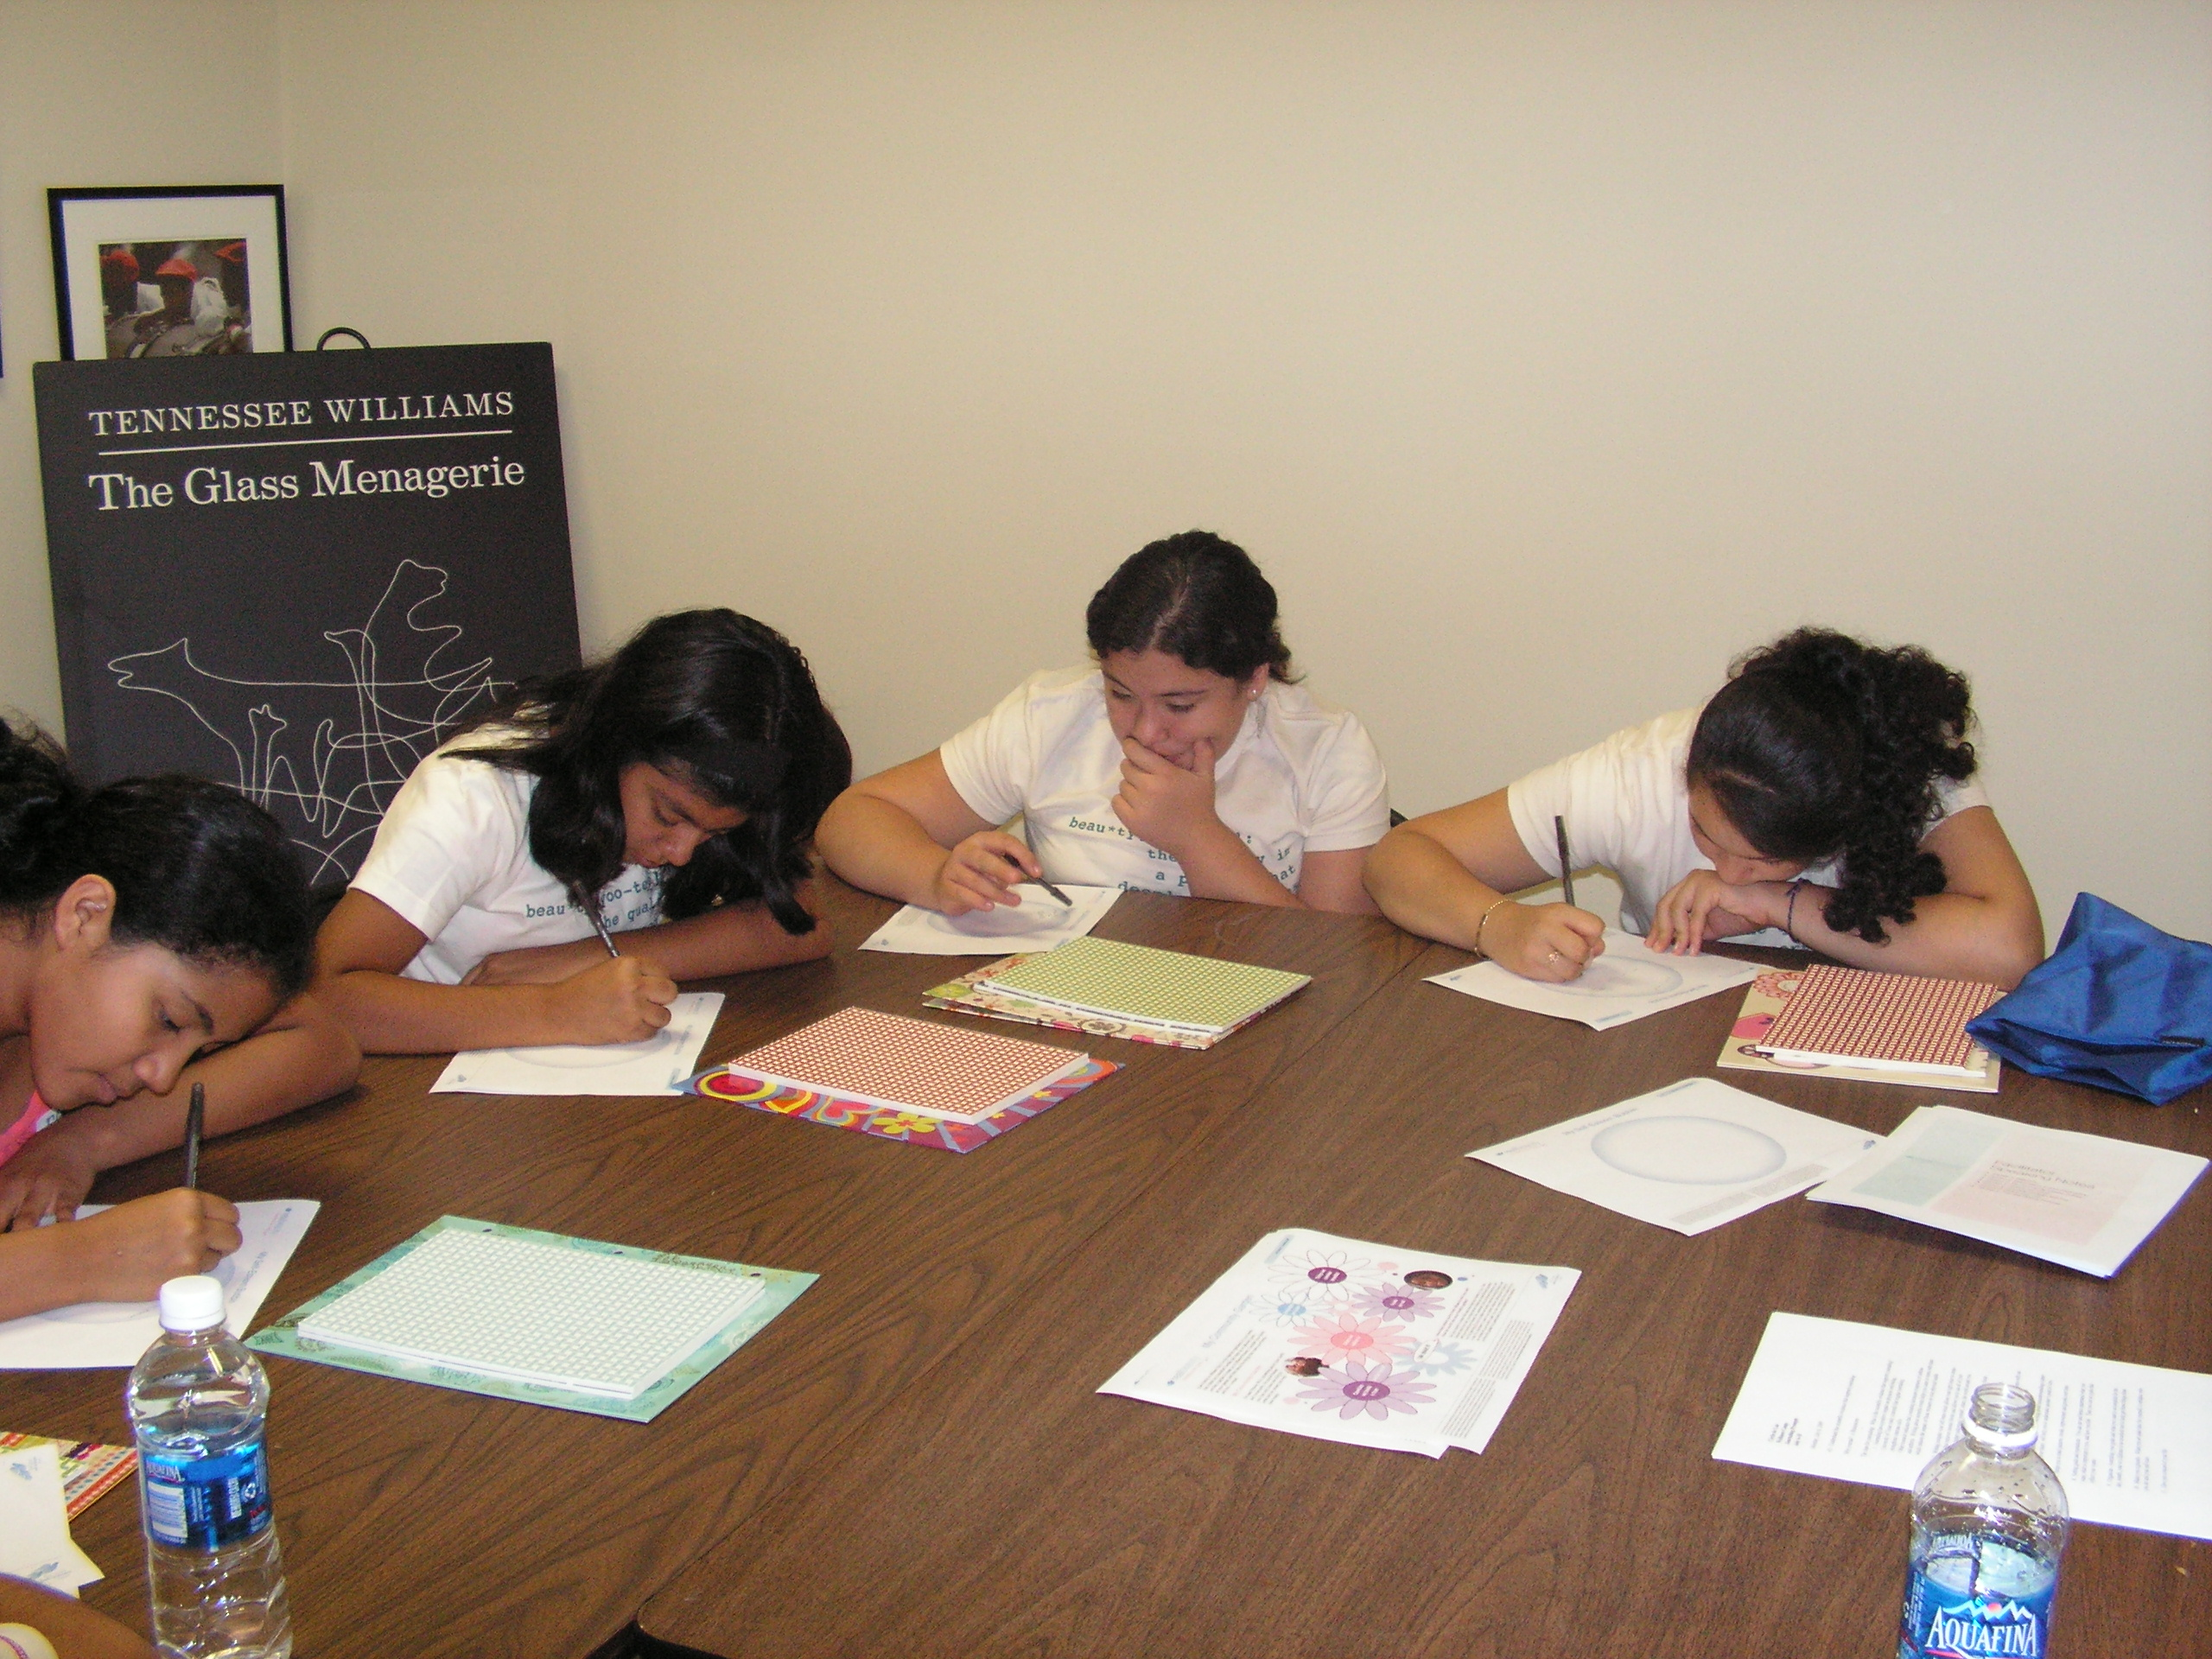 The girls work on some of the exercises during the body image workshop.